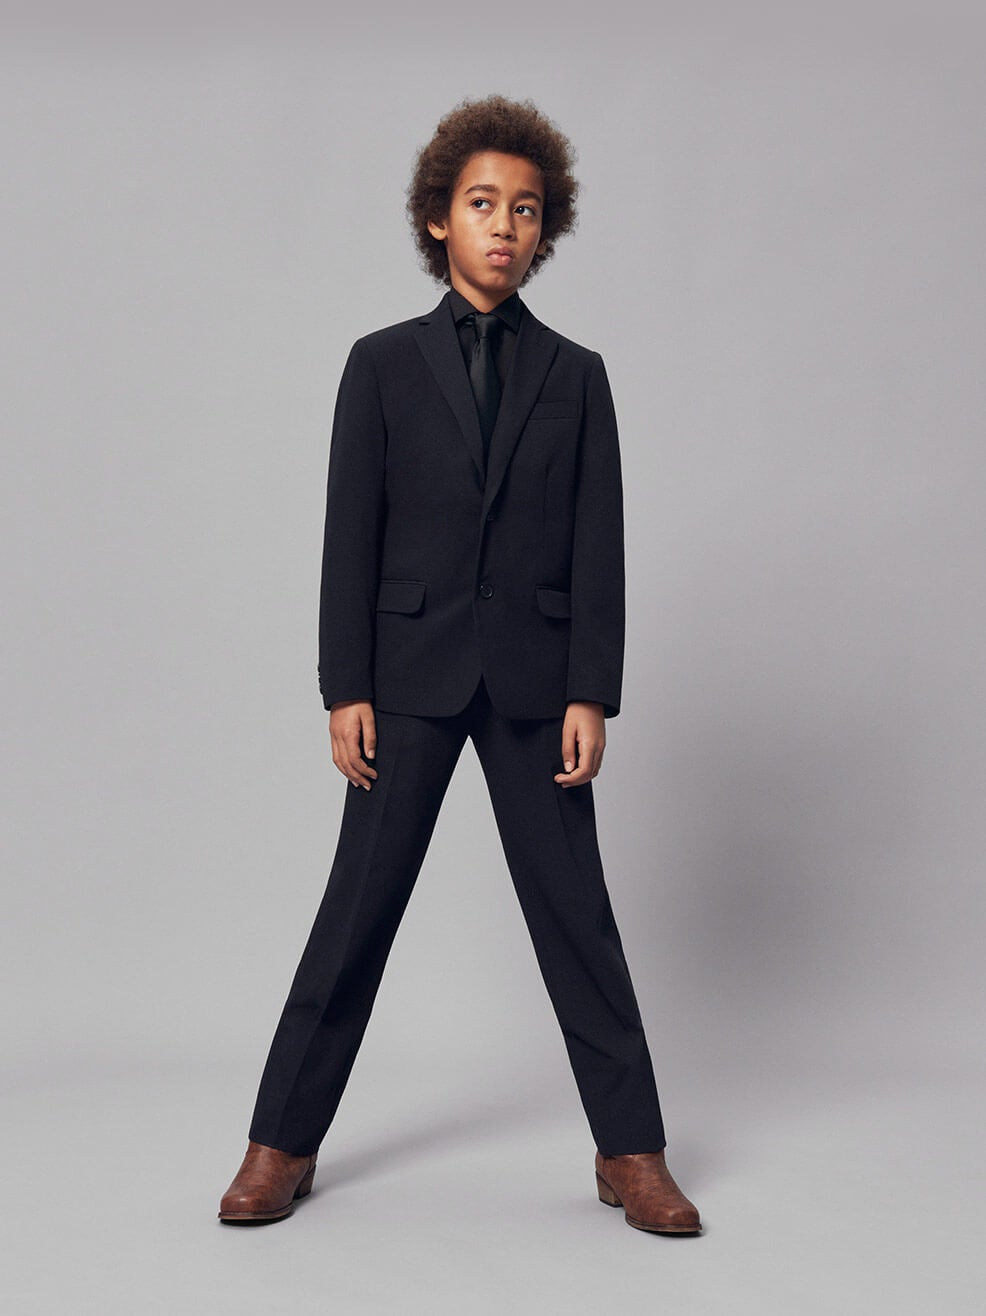 Calvin Klein Suits & Dress Shirts for Kids